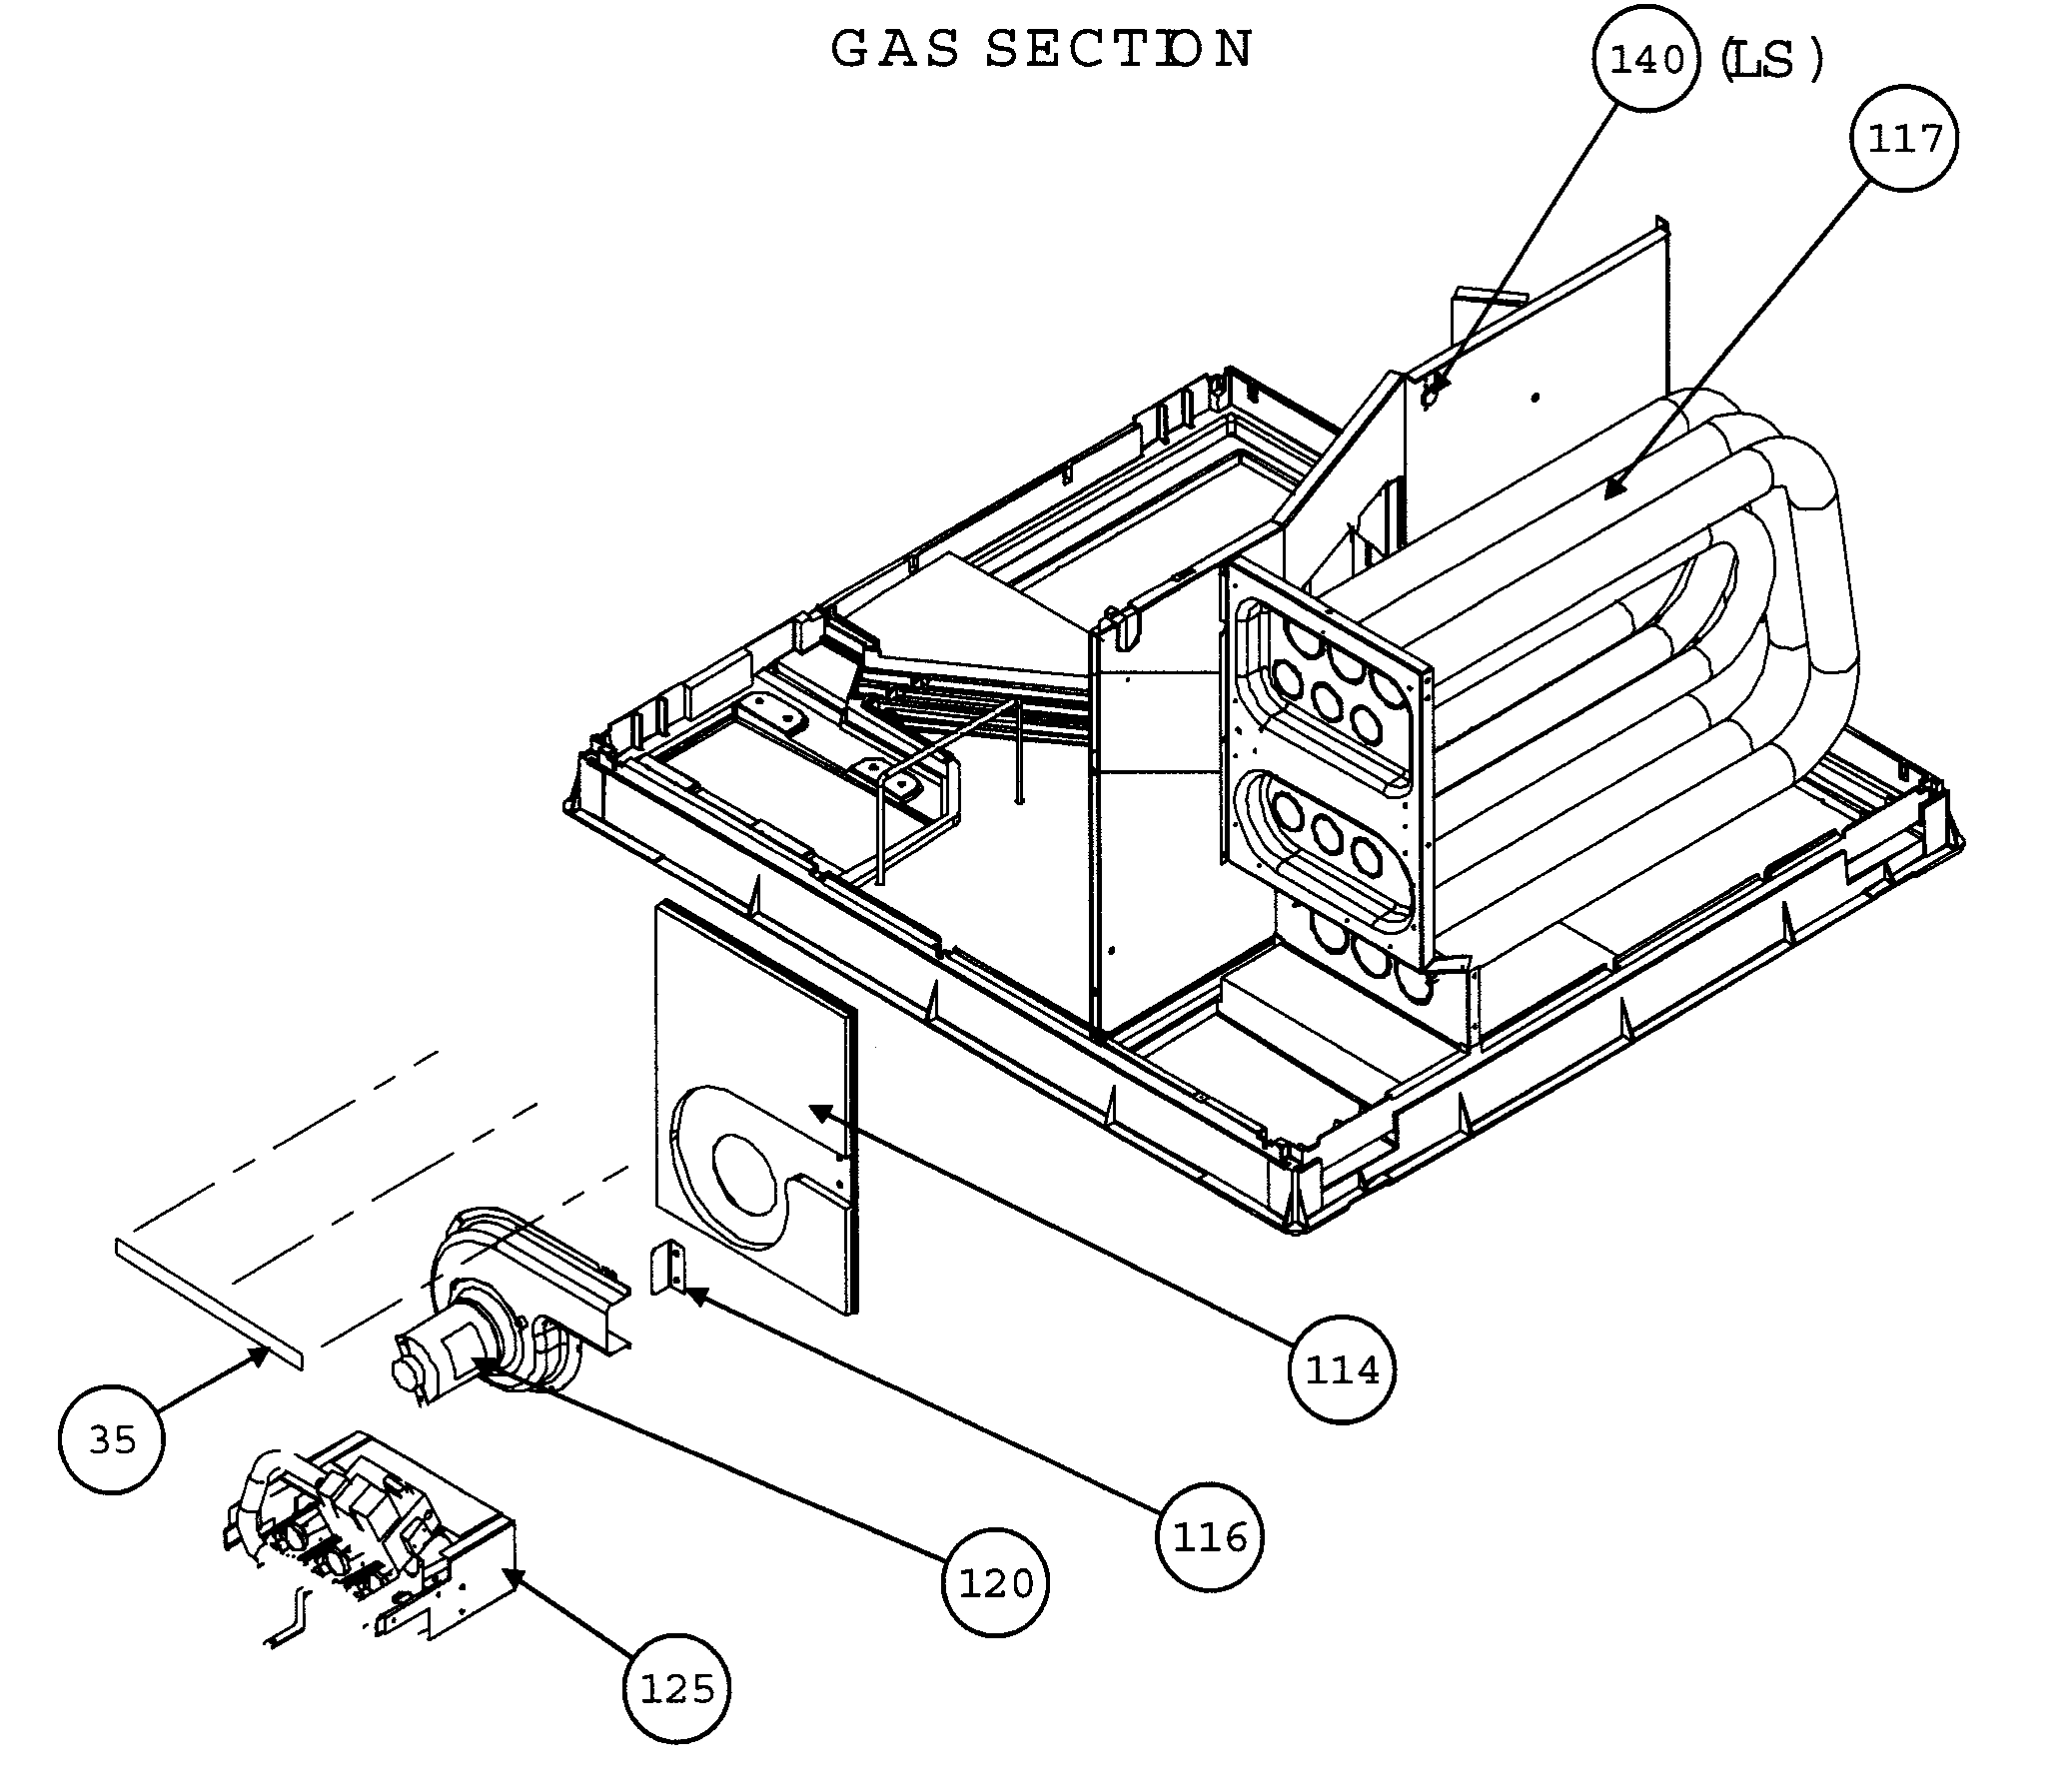 Carrier 48GP060090310 gas section diagram